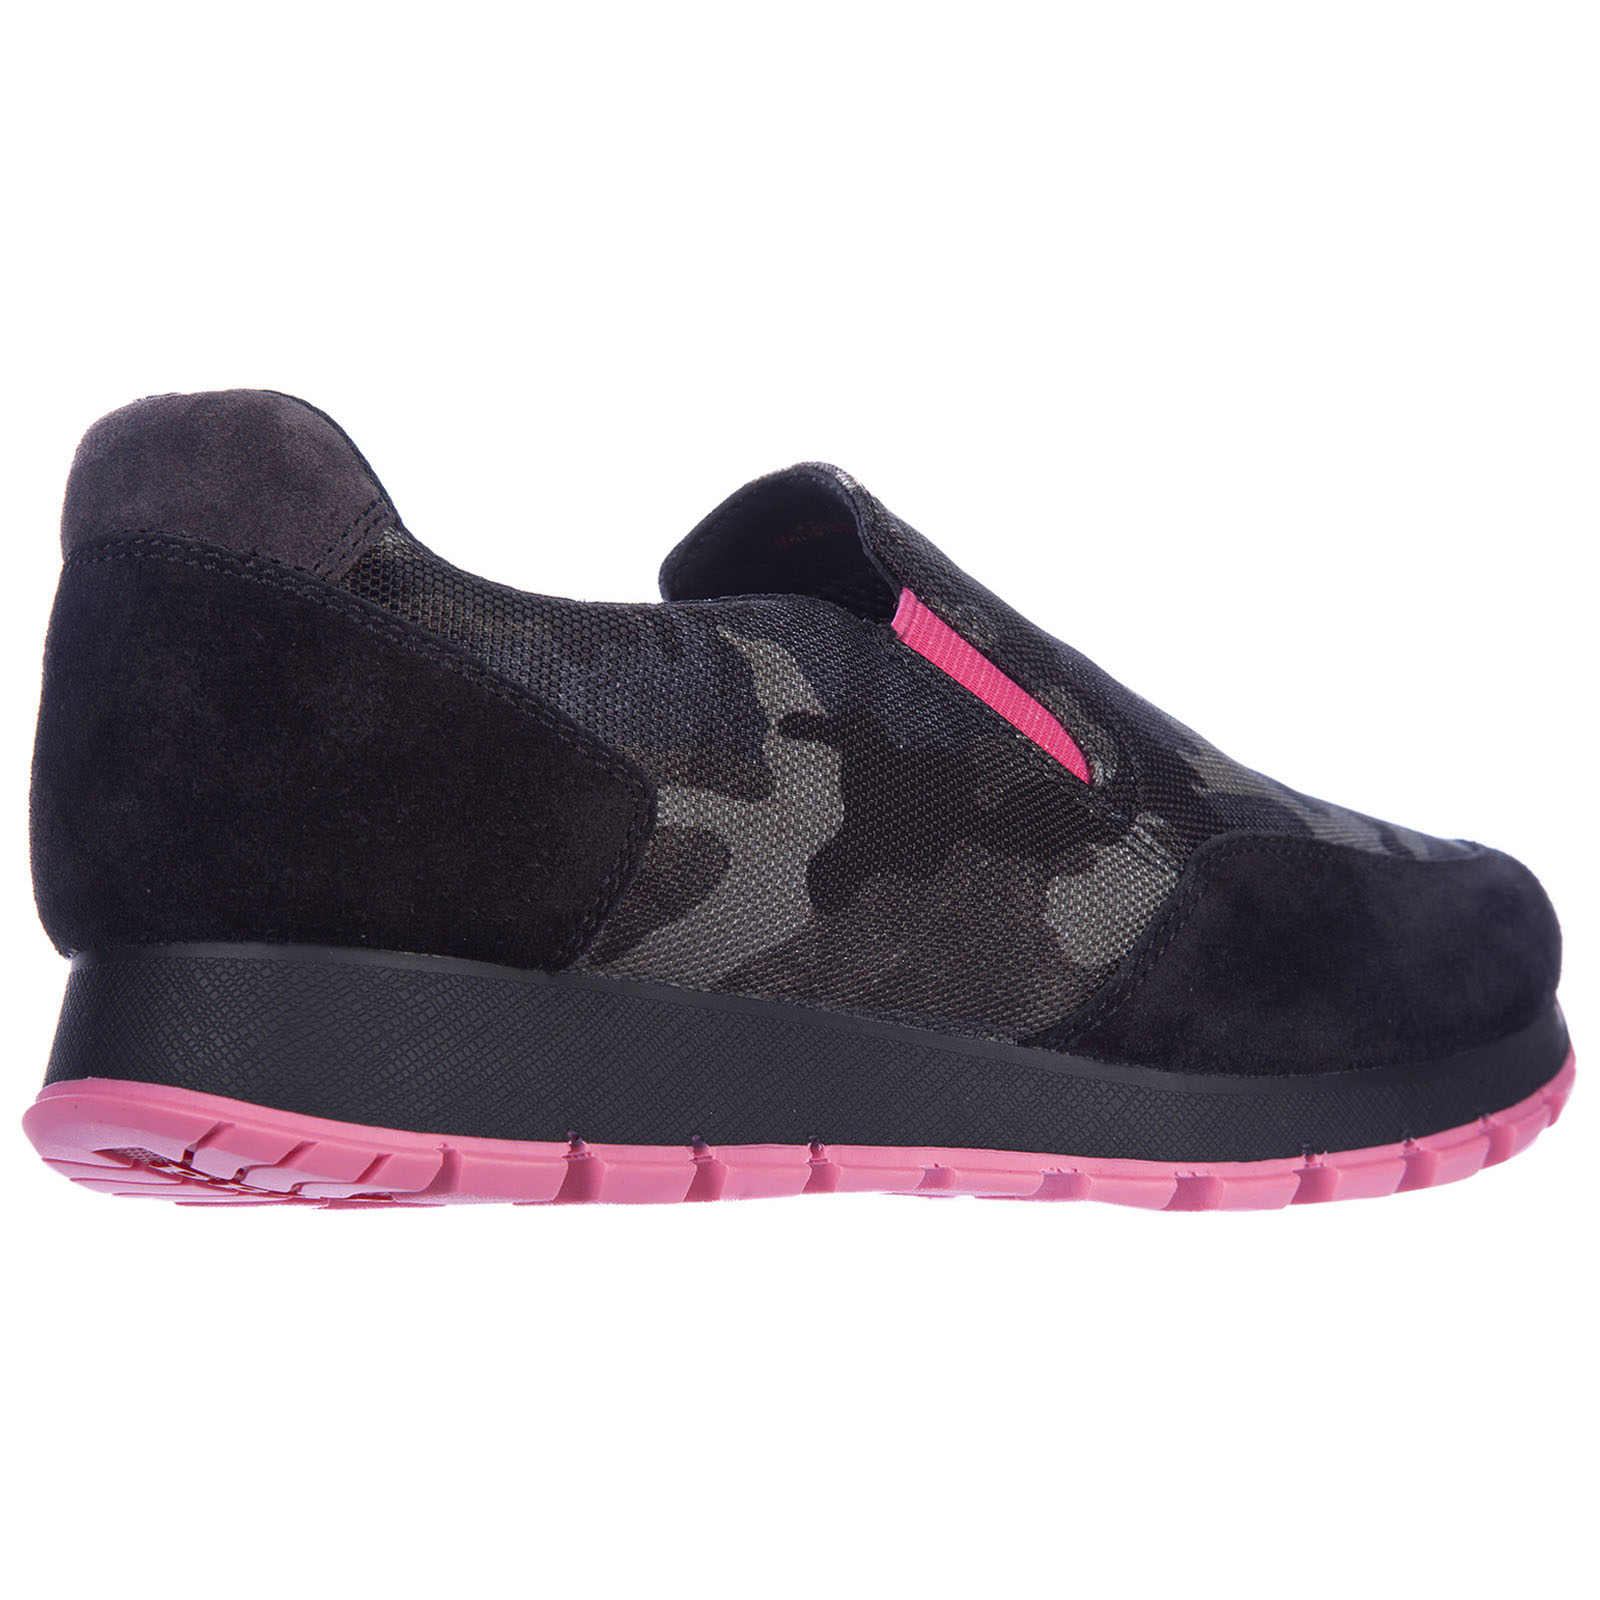 Women's slip on sneakers camouflage